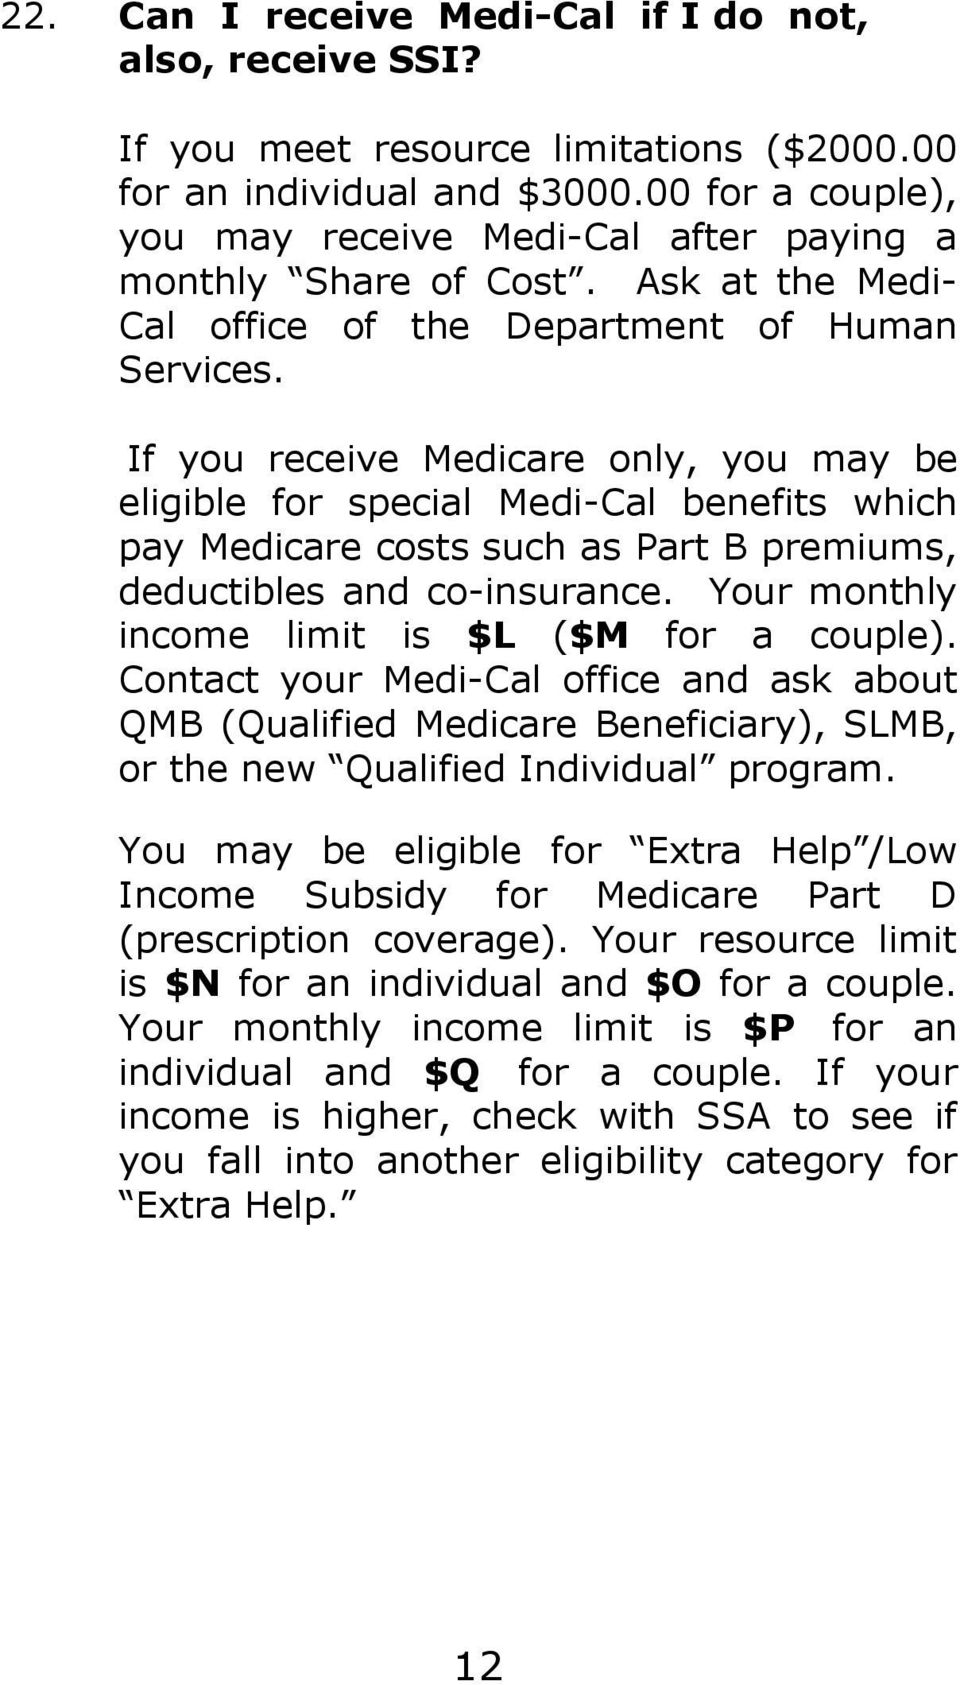 If you receive Medicare only, you may be eligible for special Medi-Cal benefits which pay Medicare costs such as Part B premiums, deductibles and co-insurance.